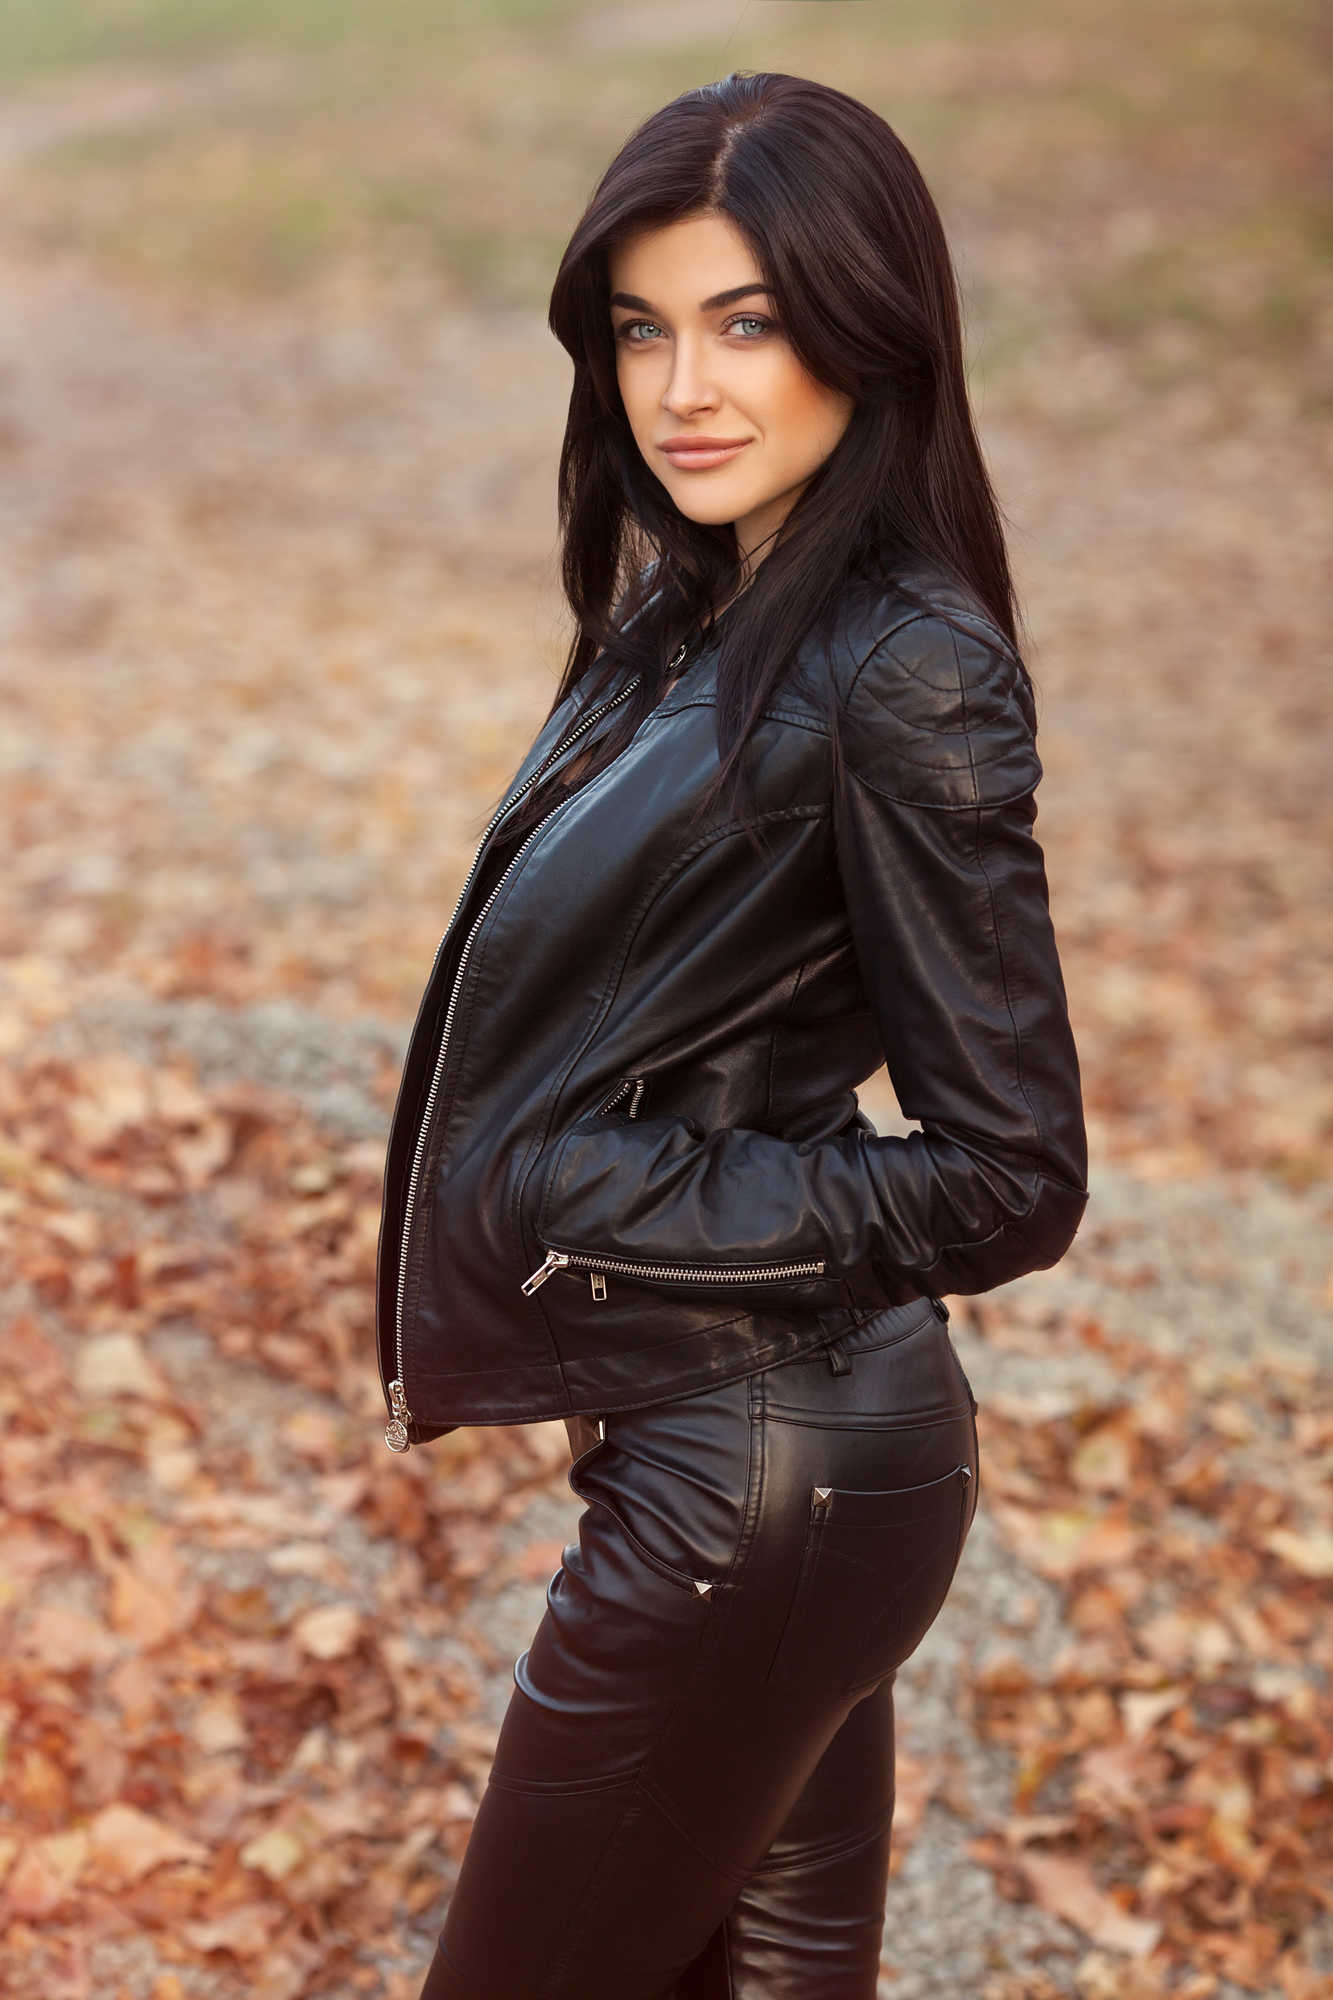 woman in leather.jpg